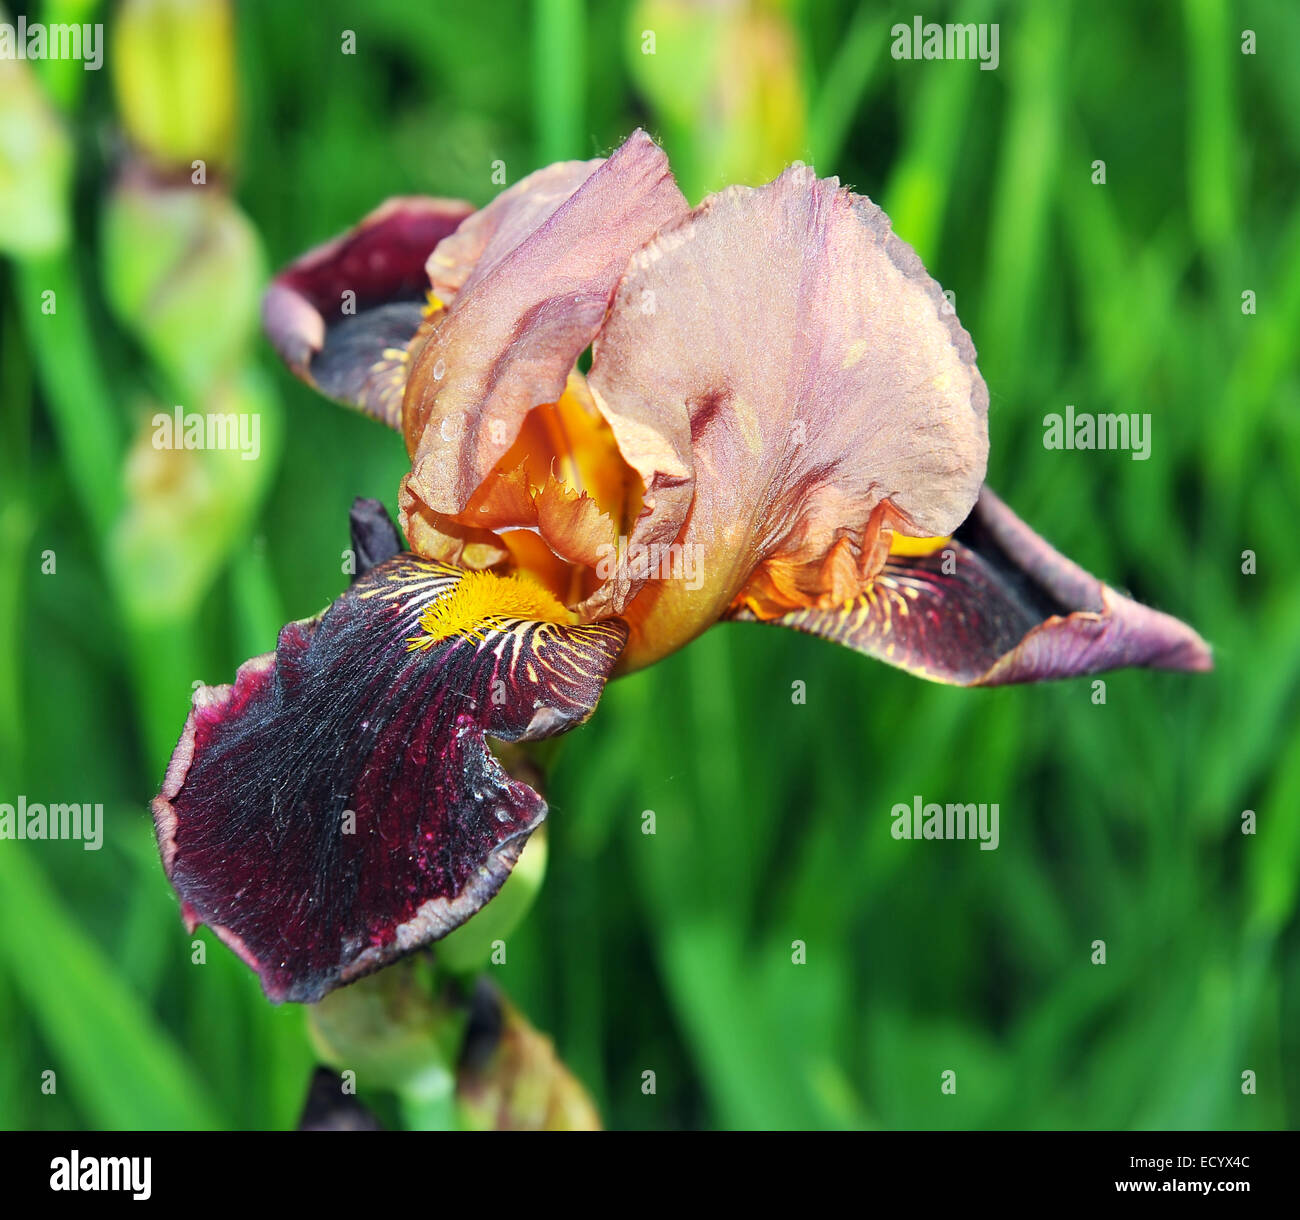 bearded yellow iris flower closeup stockfotos bearded yellow iris flower closeup bilder alamy. Black Bedroom Furniture Sets. Home Design Ideas